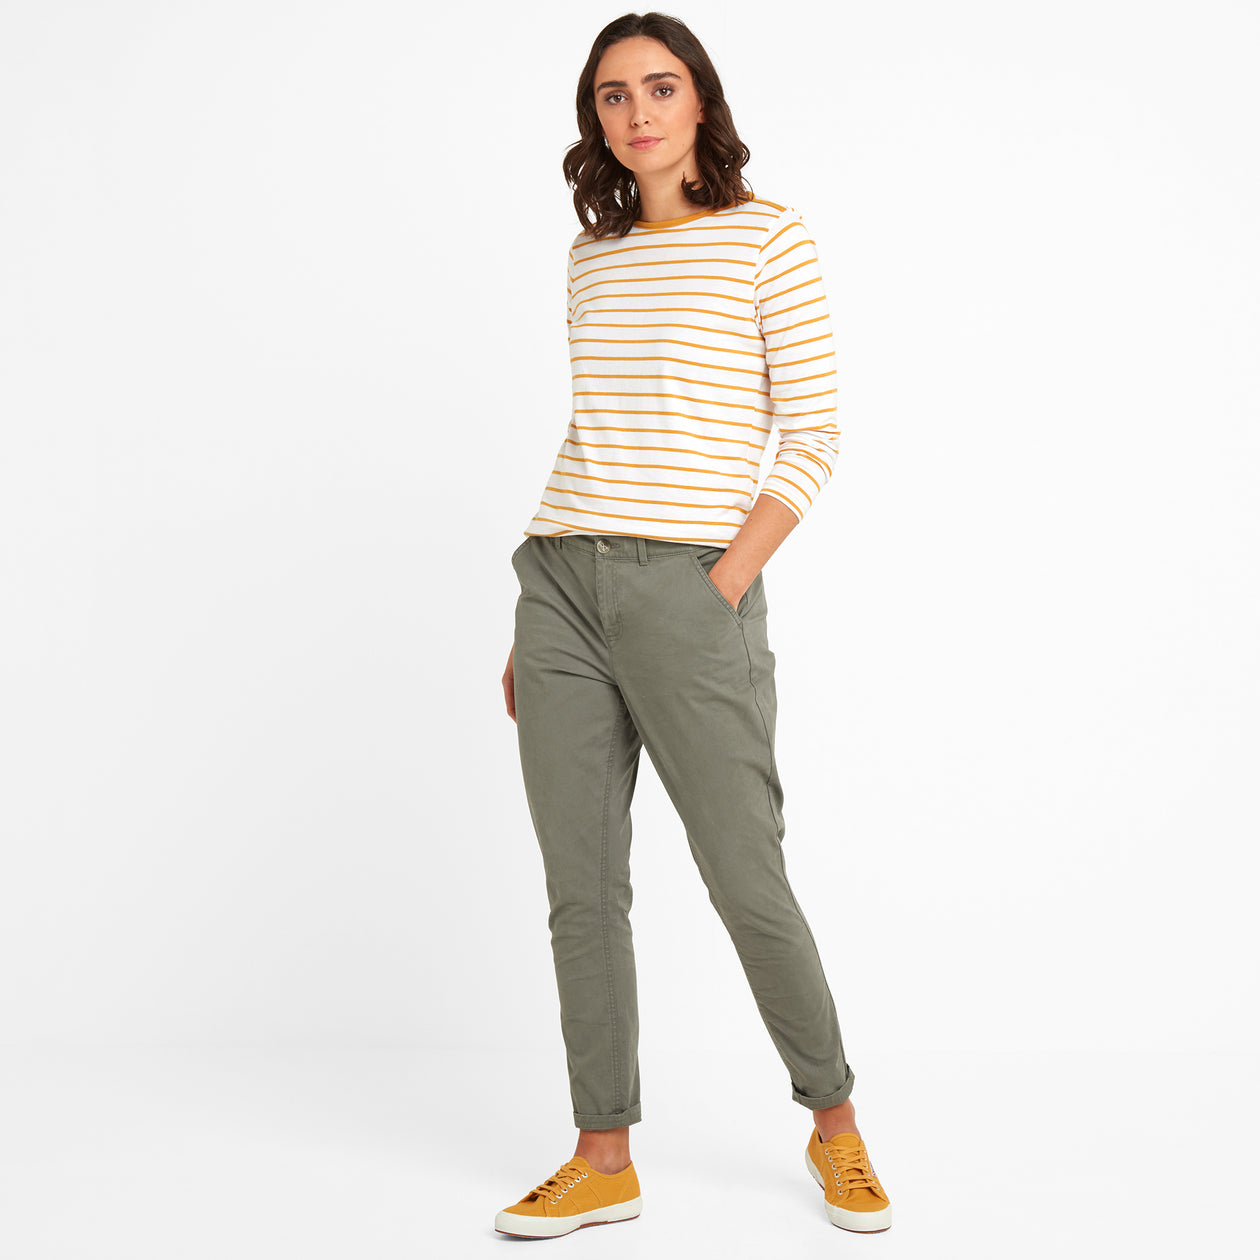 Pickering Womens Trousers Long - Khaki image 4